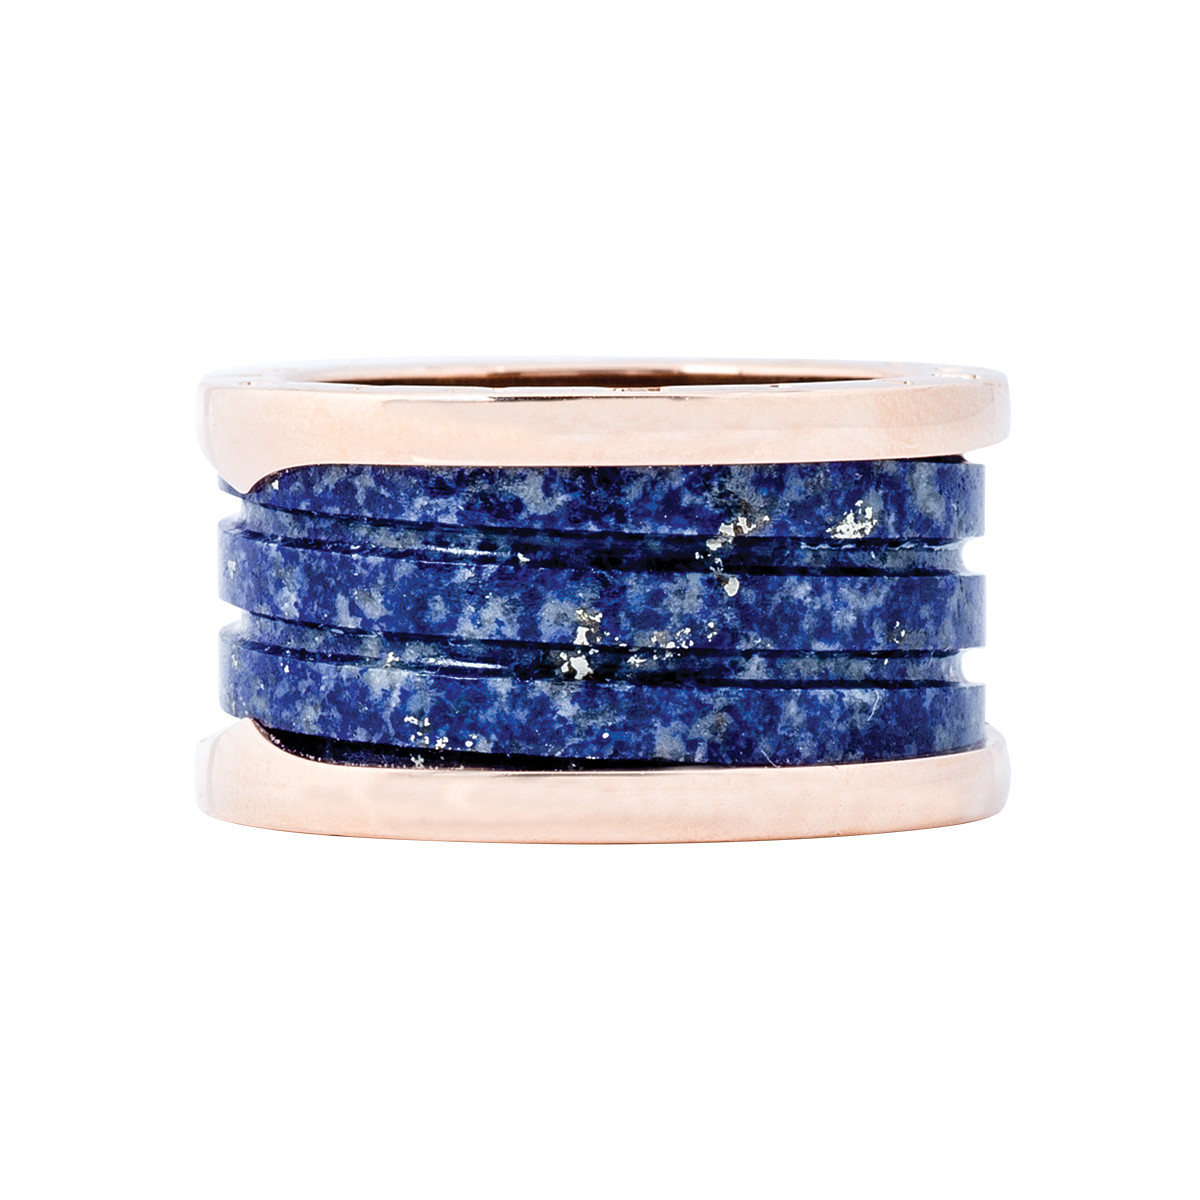 Vintage 18k Rose Gold & Blue Marble Bulgari Ring